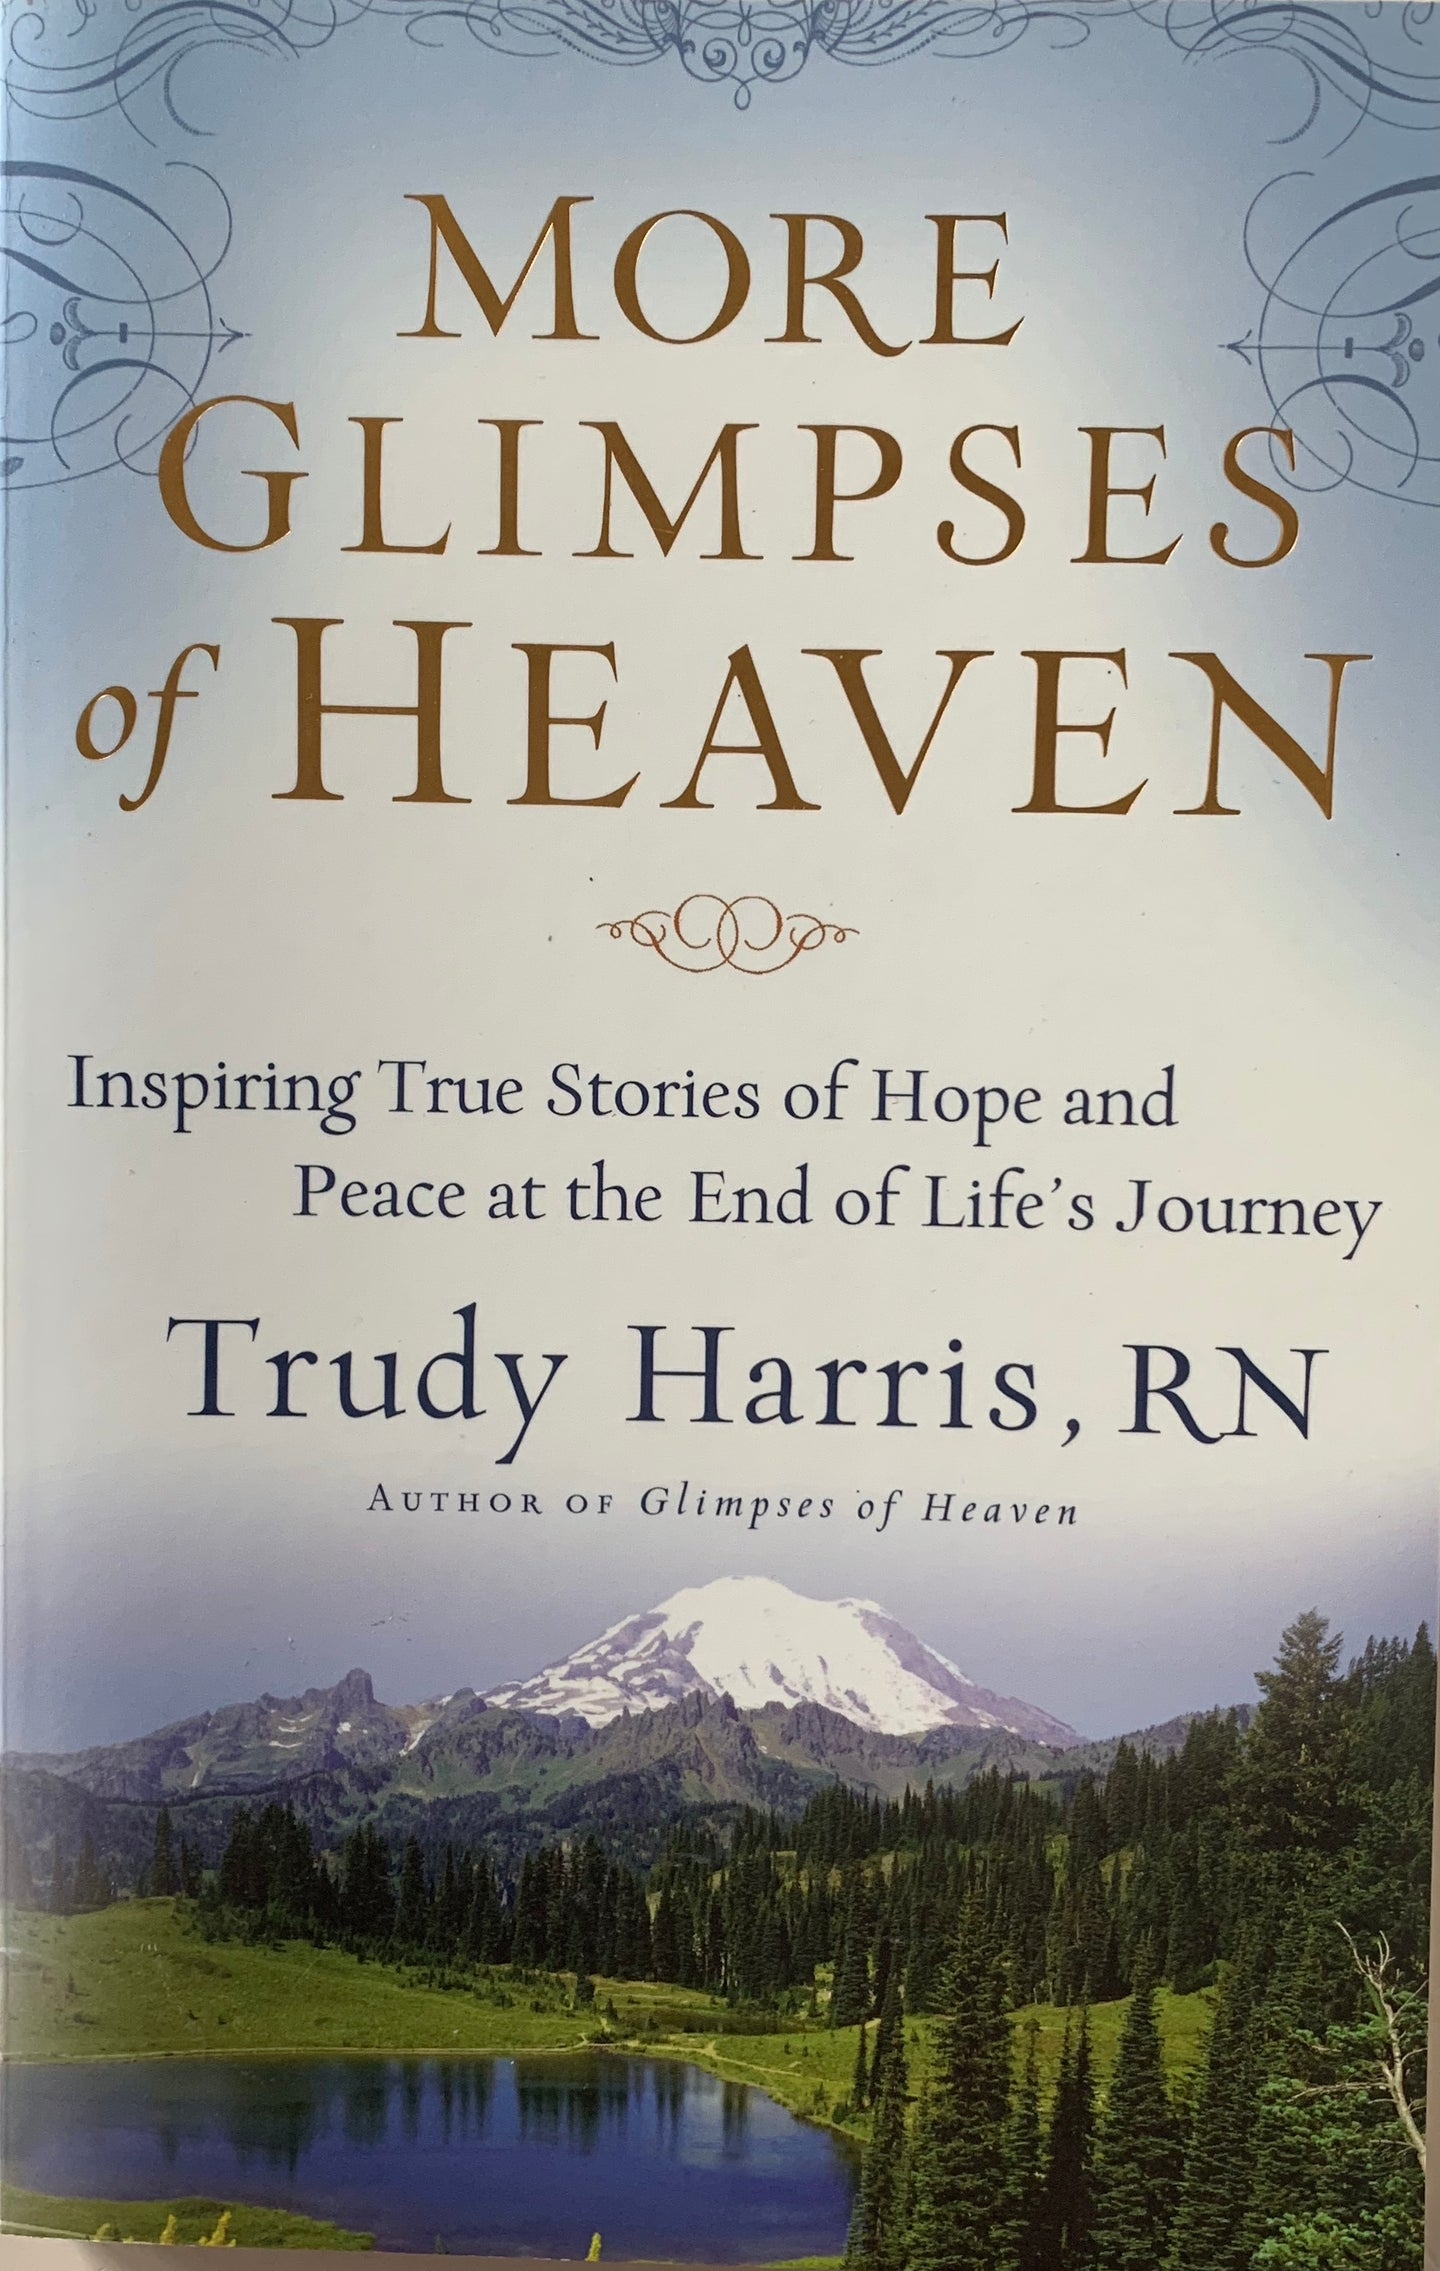 More Glimpses of Heaven: Inspiring True Stories of Hope and Peace at the End of Life's Journey